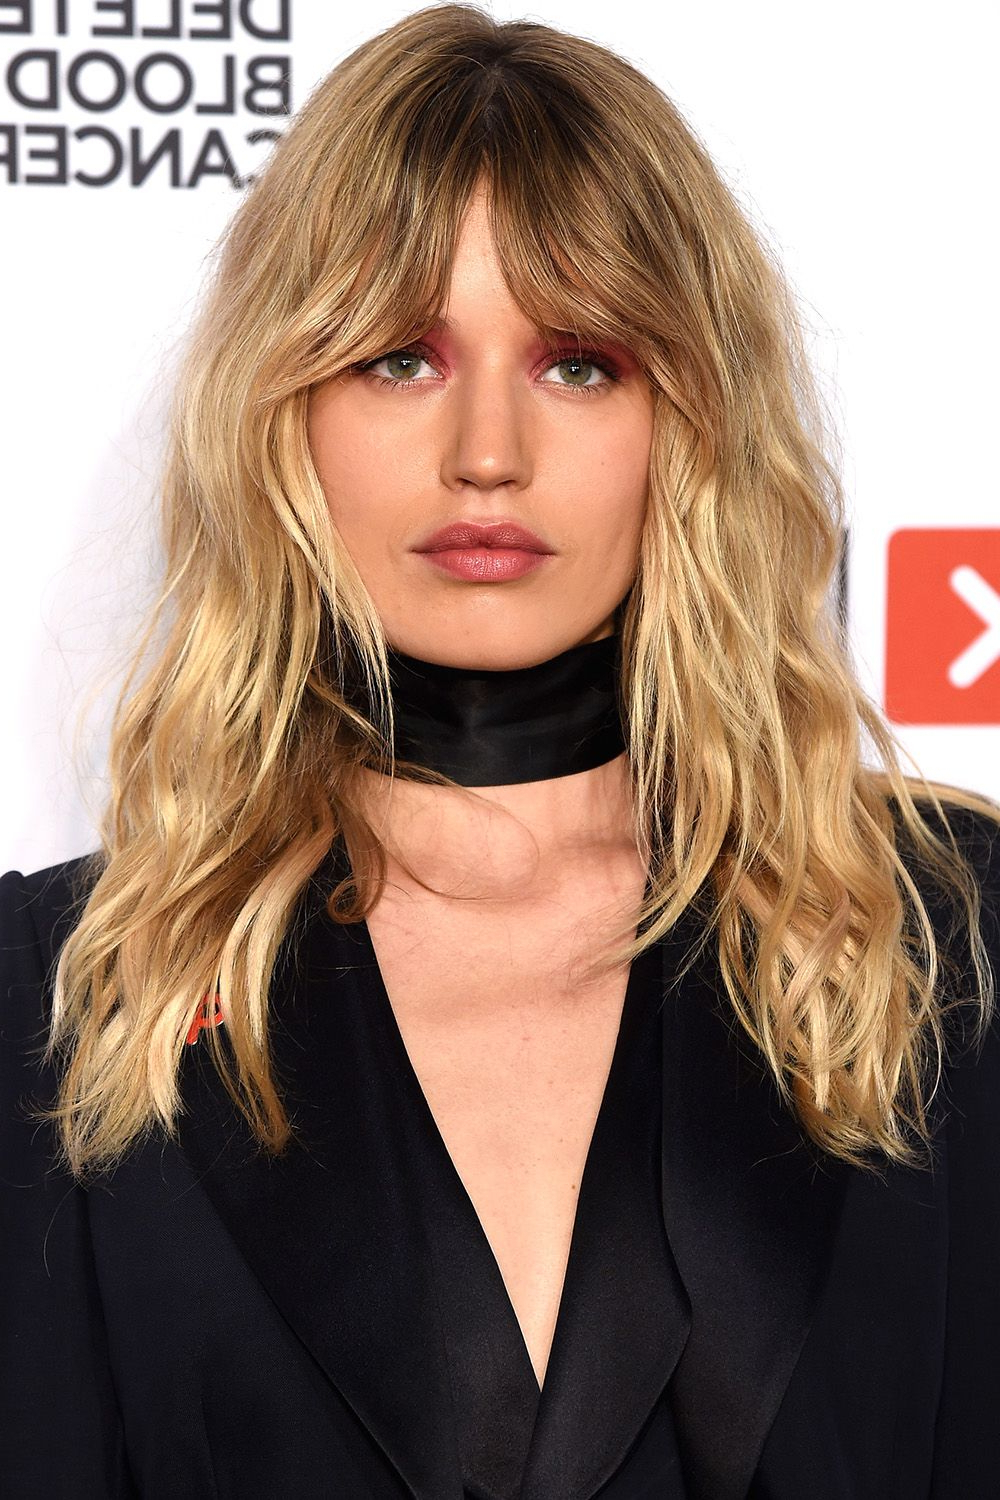 40 Best Medium Hairstyles – Celebrities With Shoulder Length Haircuts For Widely Used Medium Hairstyles With Long Fringe (View 15 of 20)